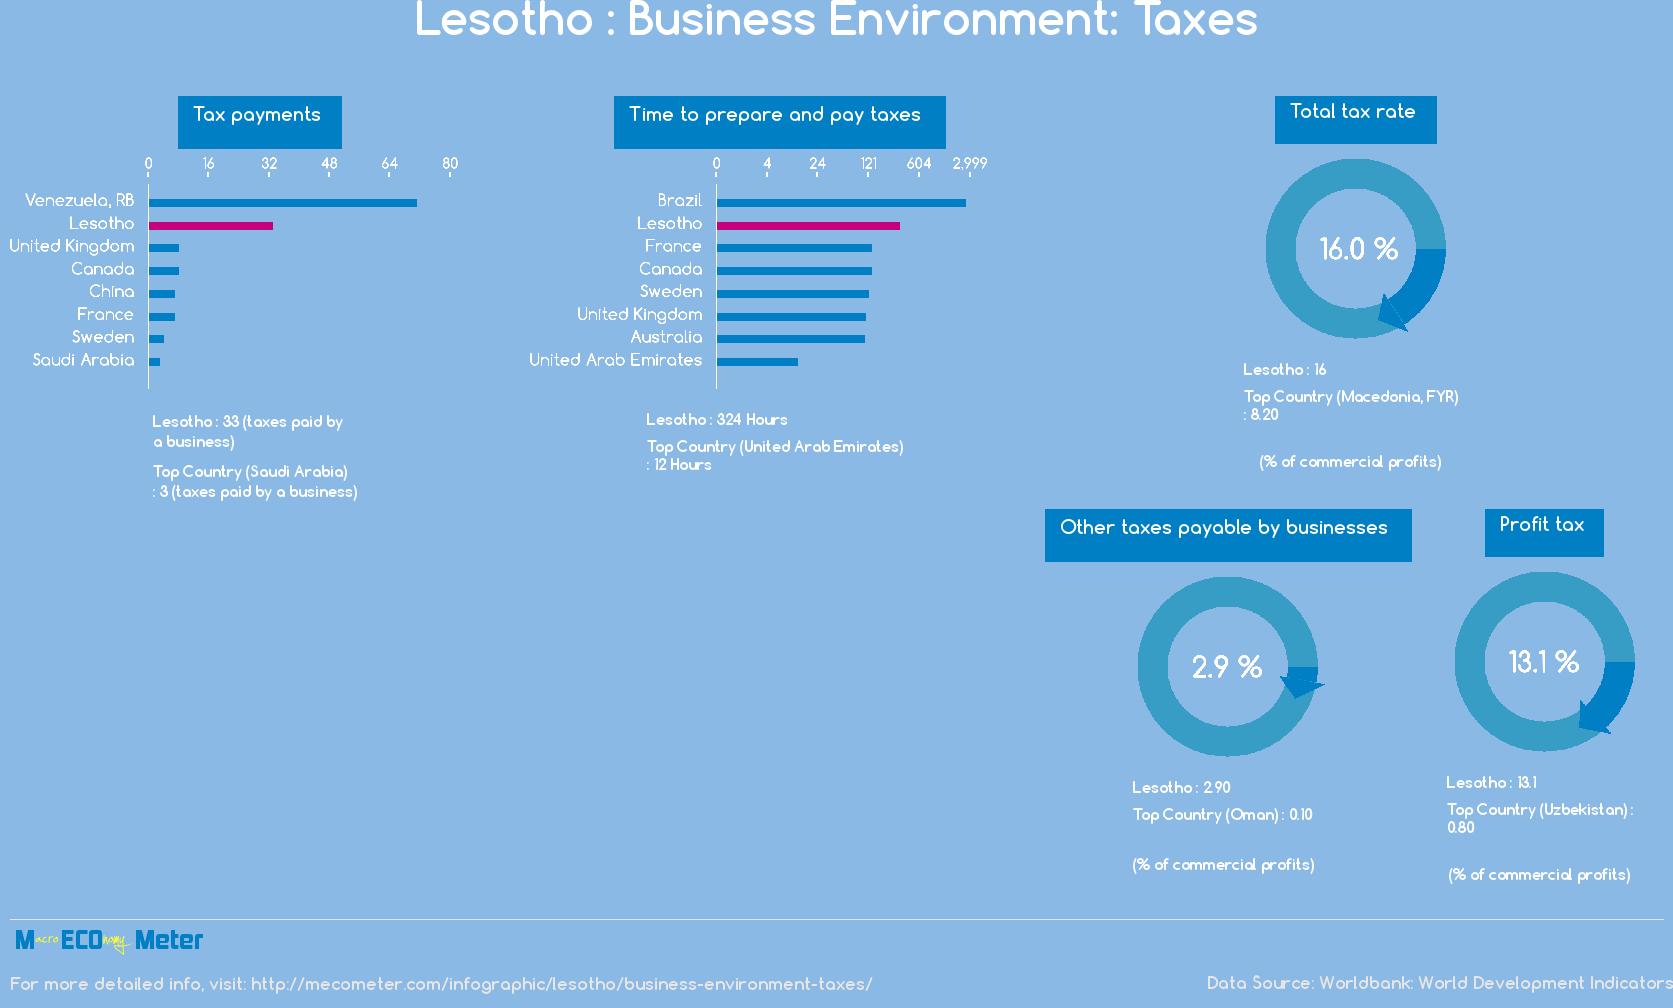 Lesotho : Business Environment: Taxes